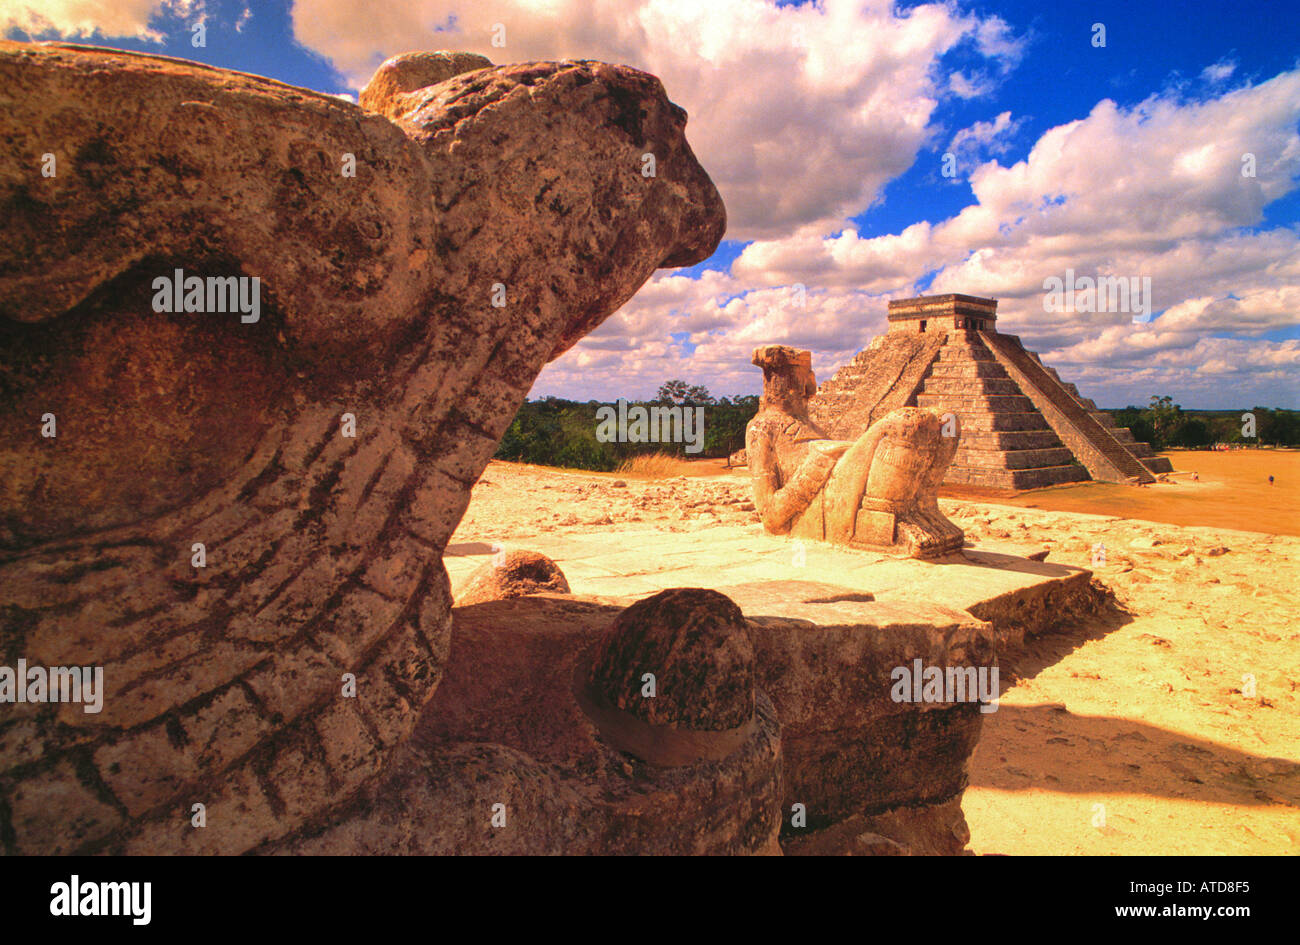 Statues of gods and reptiles sit upon the ruins of Chichen Itza with a view of El Castillo or the Pyramid in the distance - Stock Image